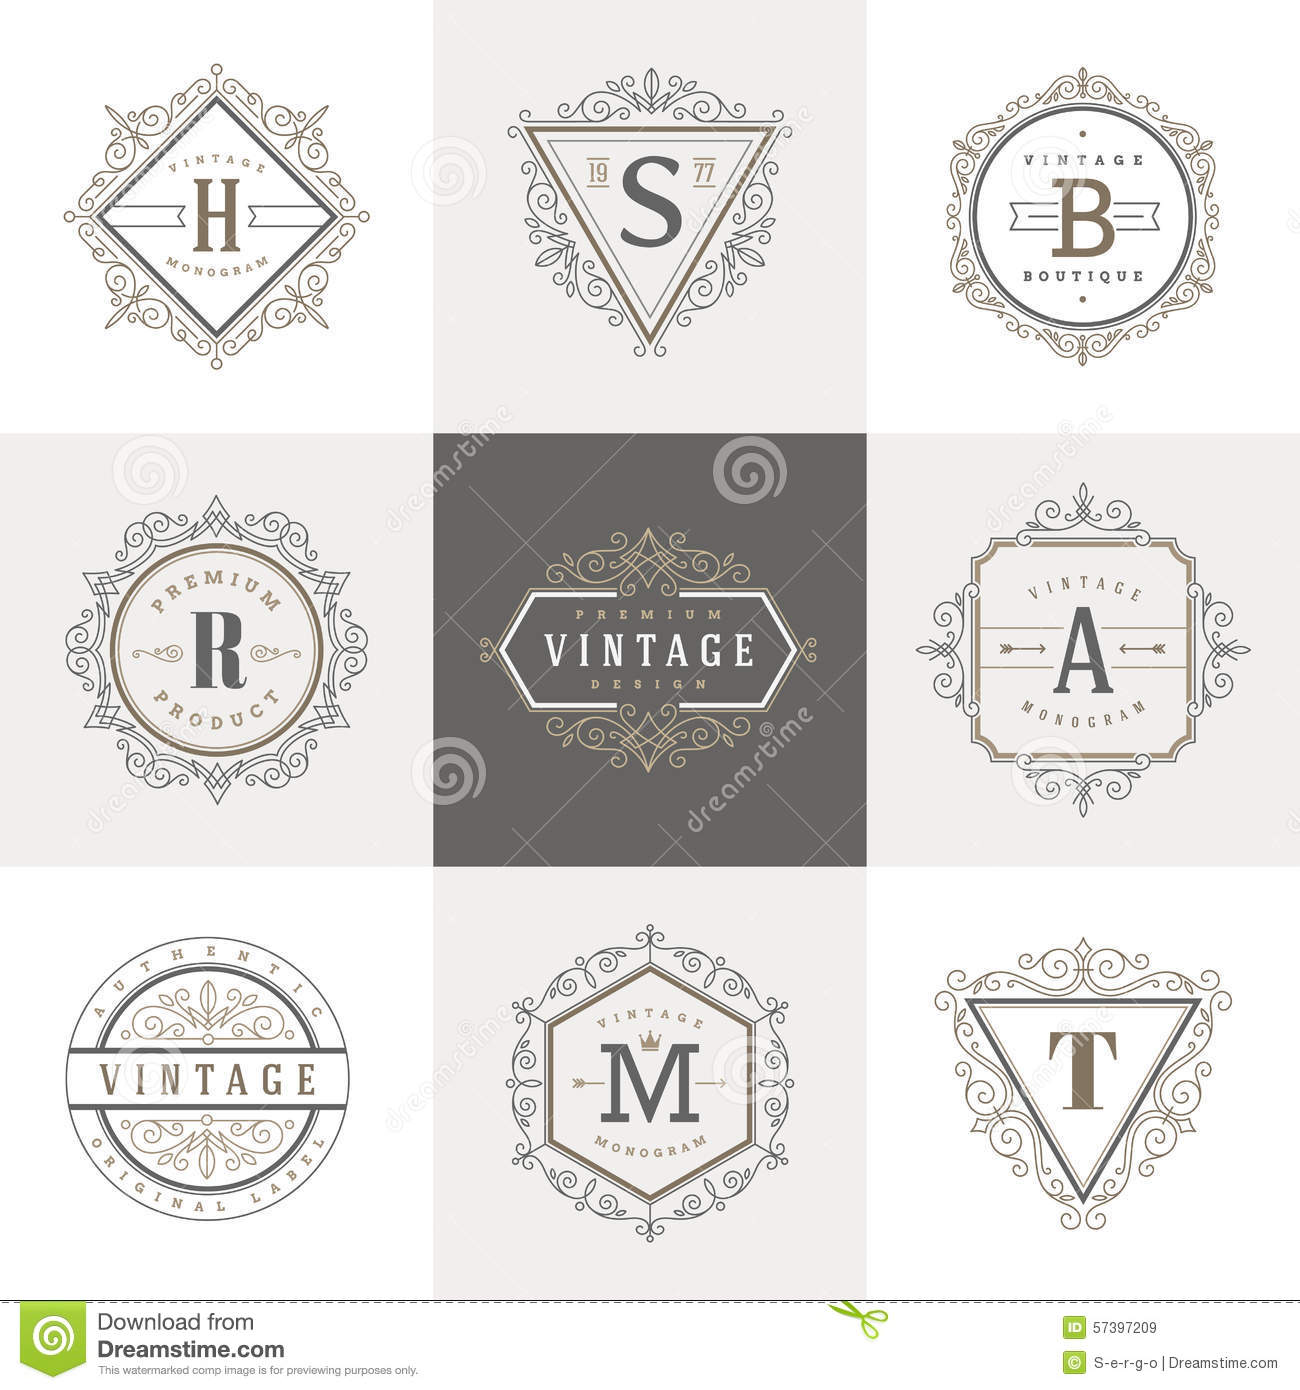 Baseball Alphabet B in addition Celtic Letter W Gm185248706 19745749 as well Alibata Italic additionally Stock Images Letter N Image7207234 together with 142848619403379456. on only the letter r